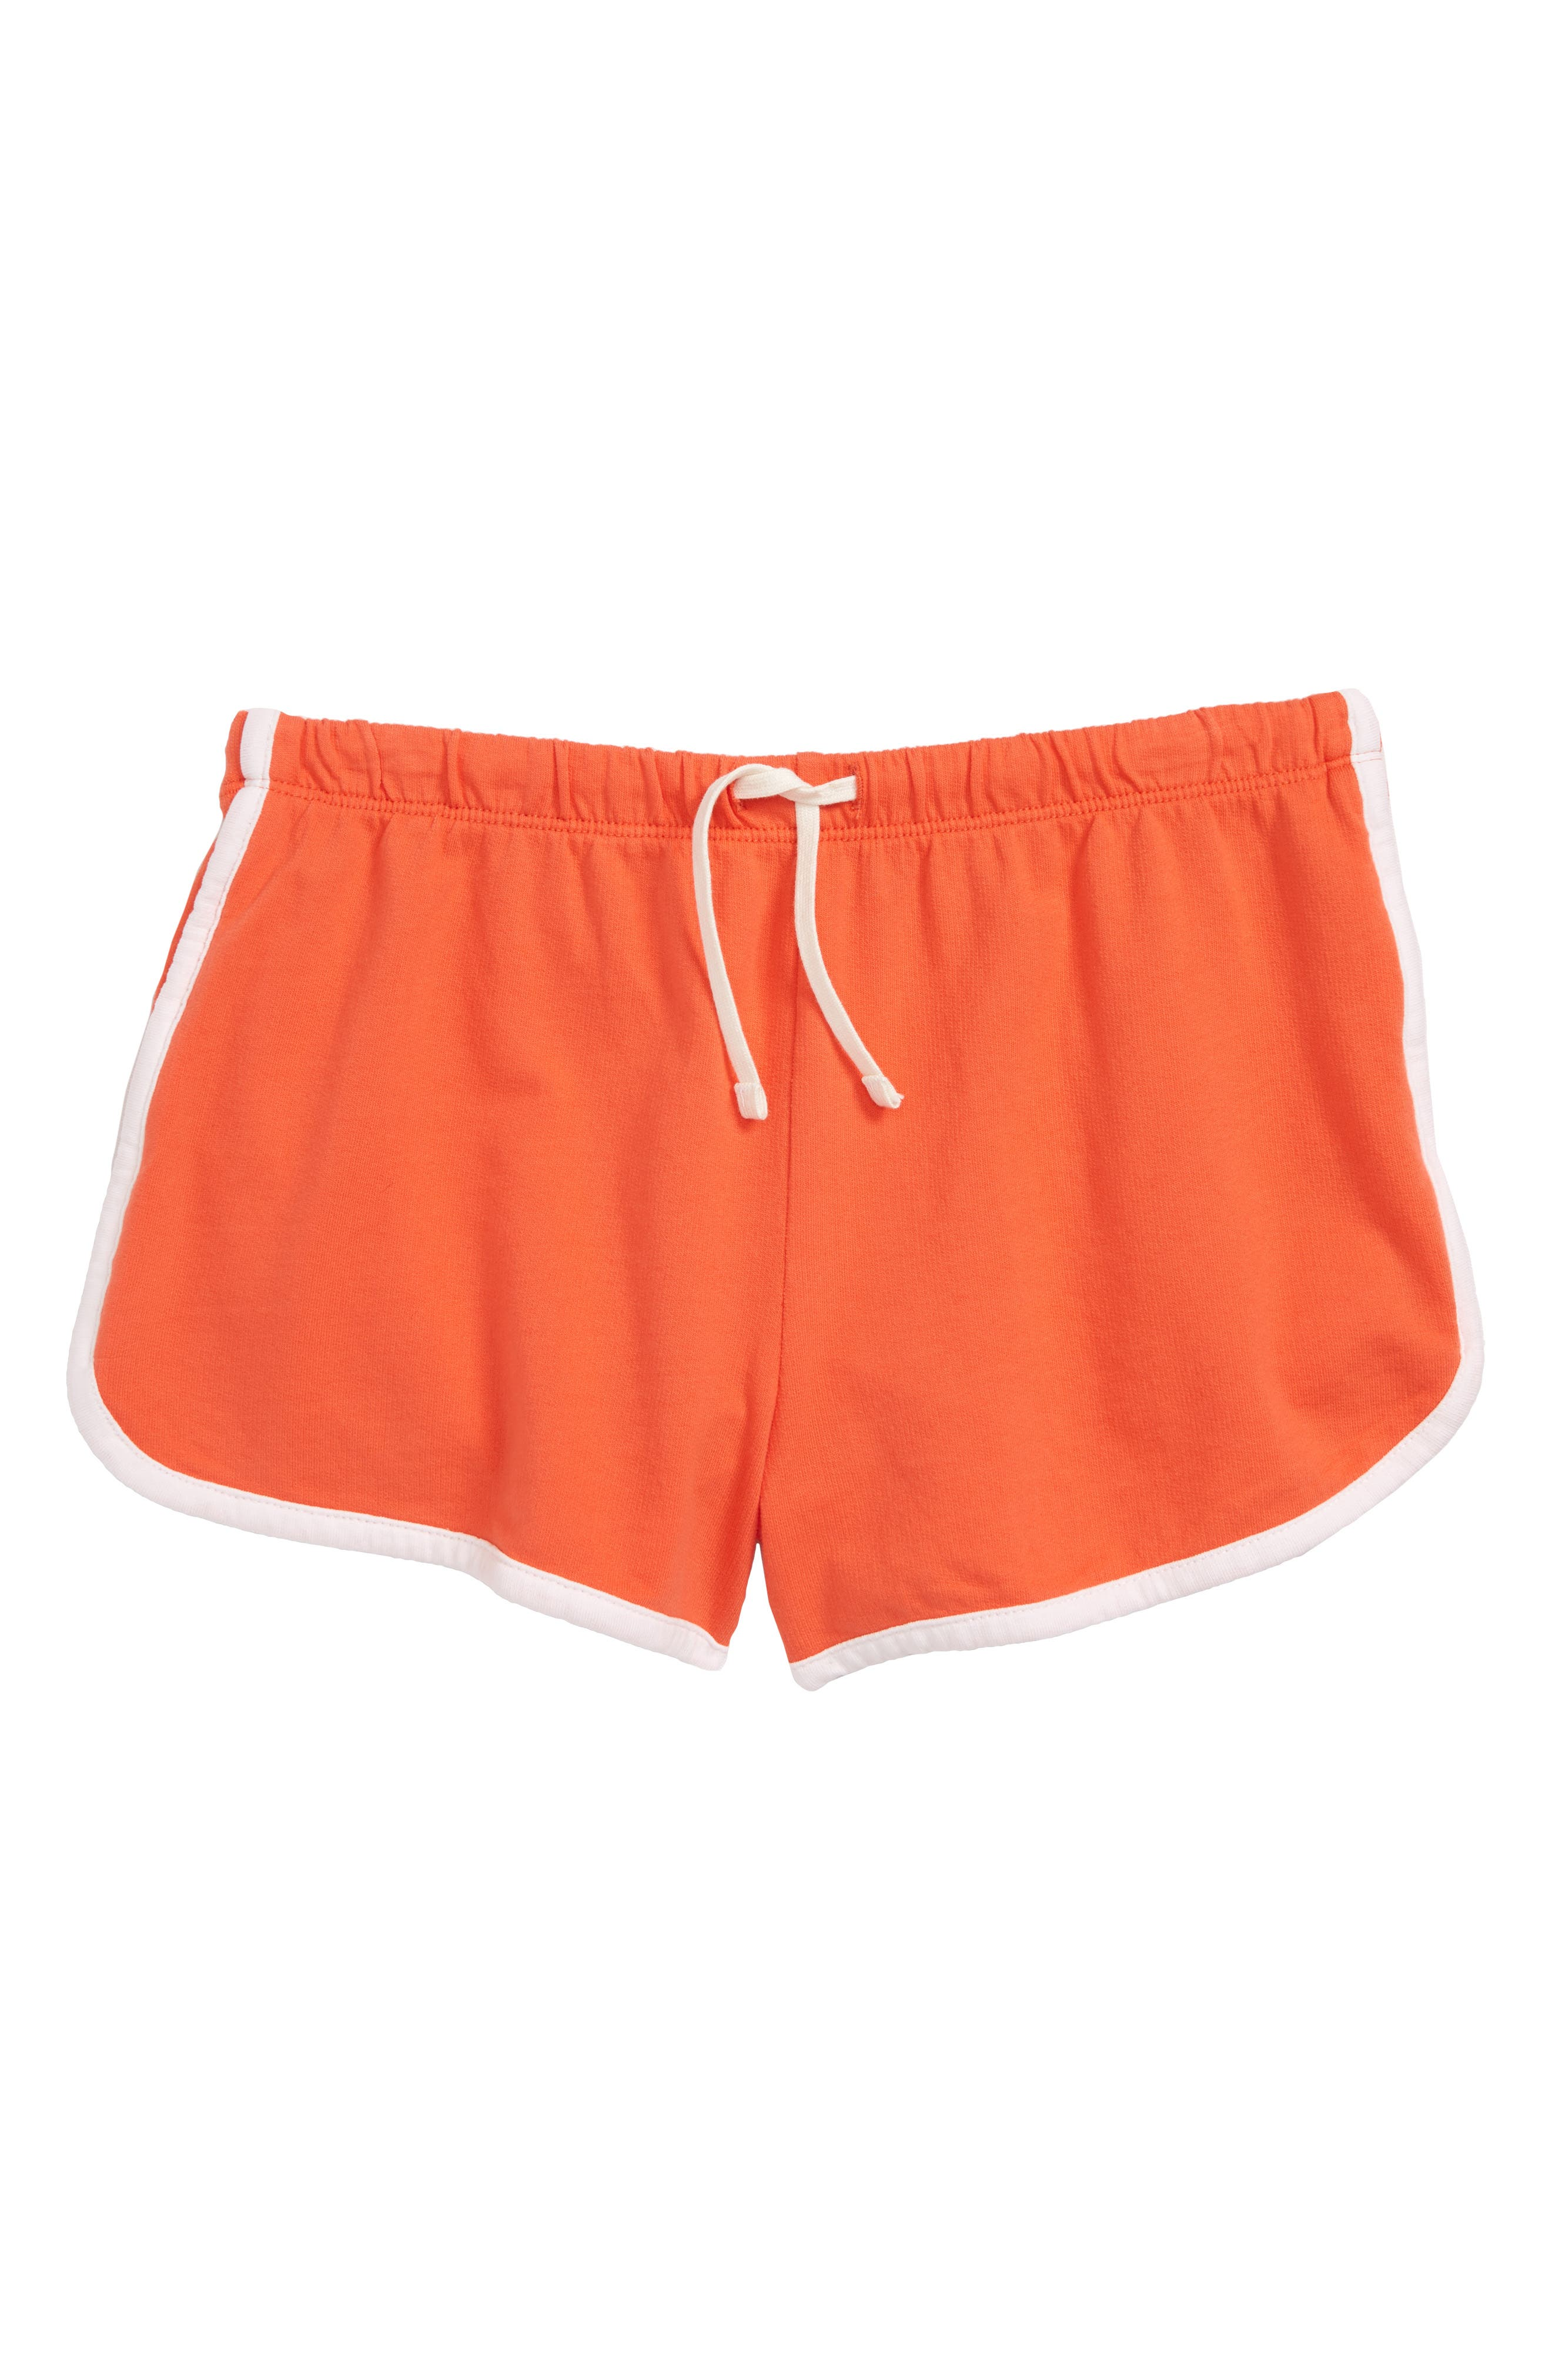 Cotton Dolphin Shorts,                         Main,                         color, Coral Hot